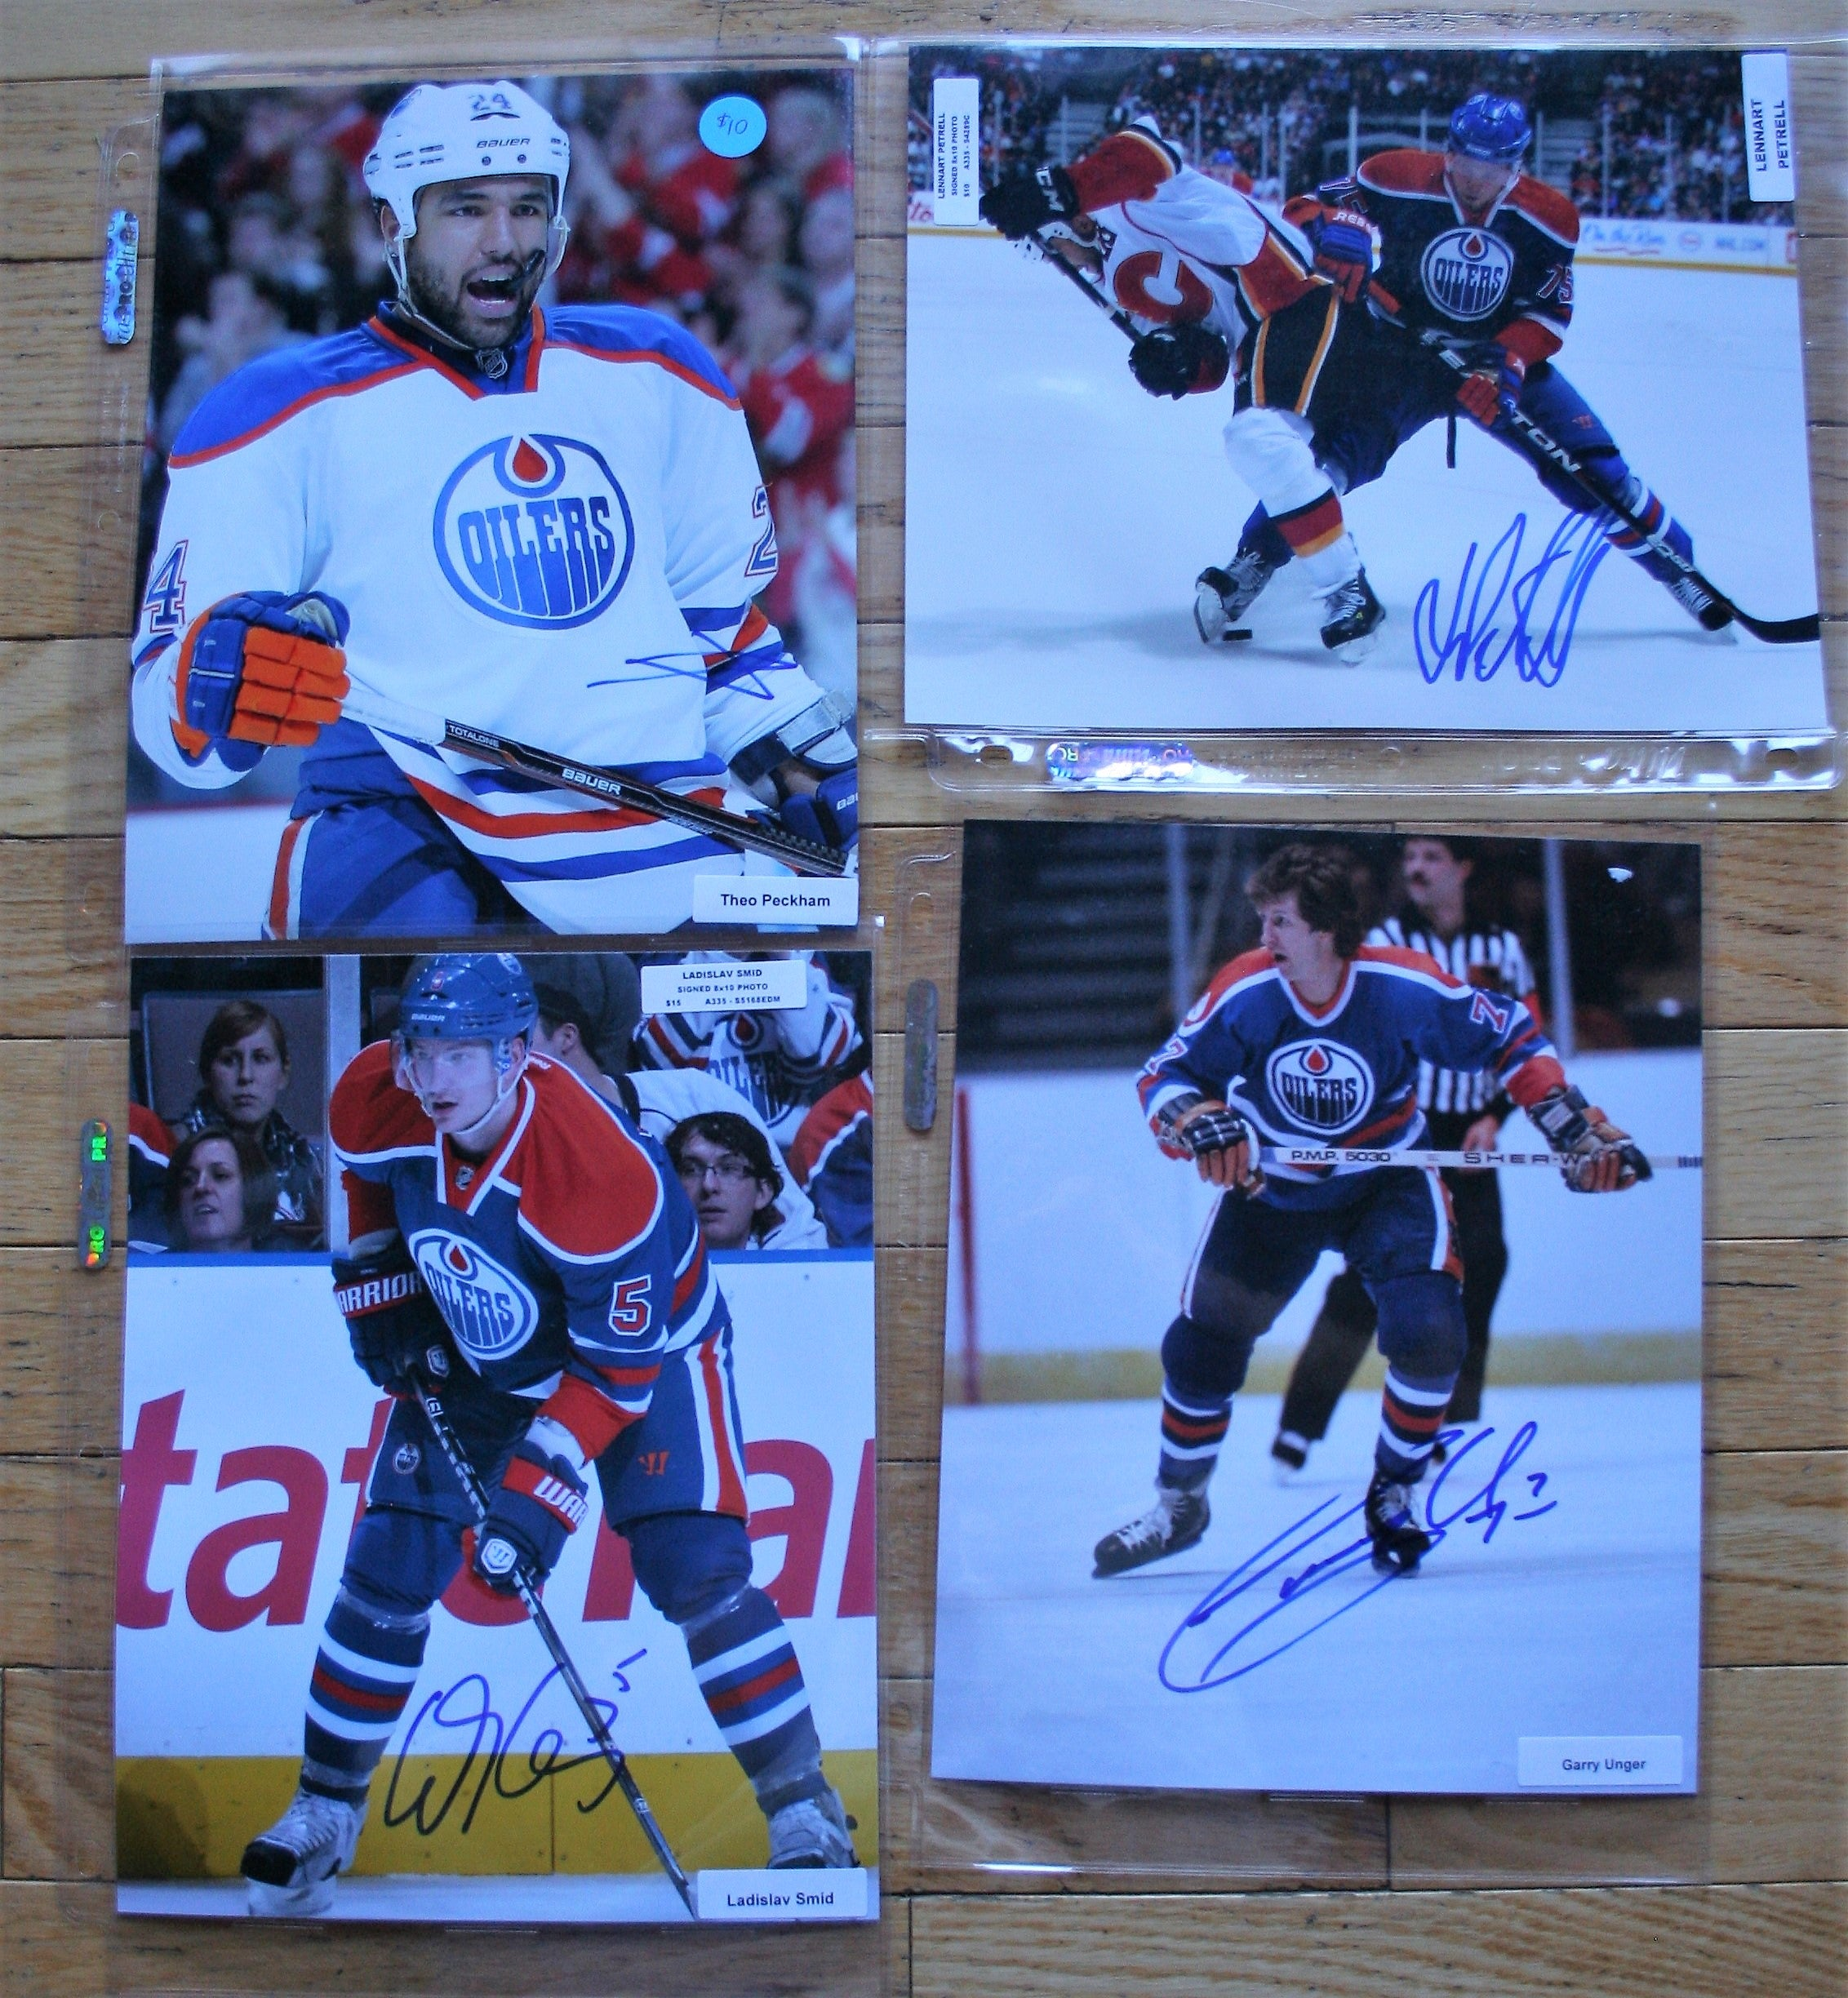 4 Signed Oilers NHL 8x10 Photos  Peckham, Petrell, Smid, Unger  FREE SHIPPING  c/w COA  NHL Hockey Memorabilia